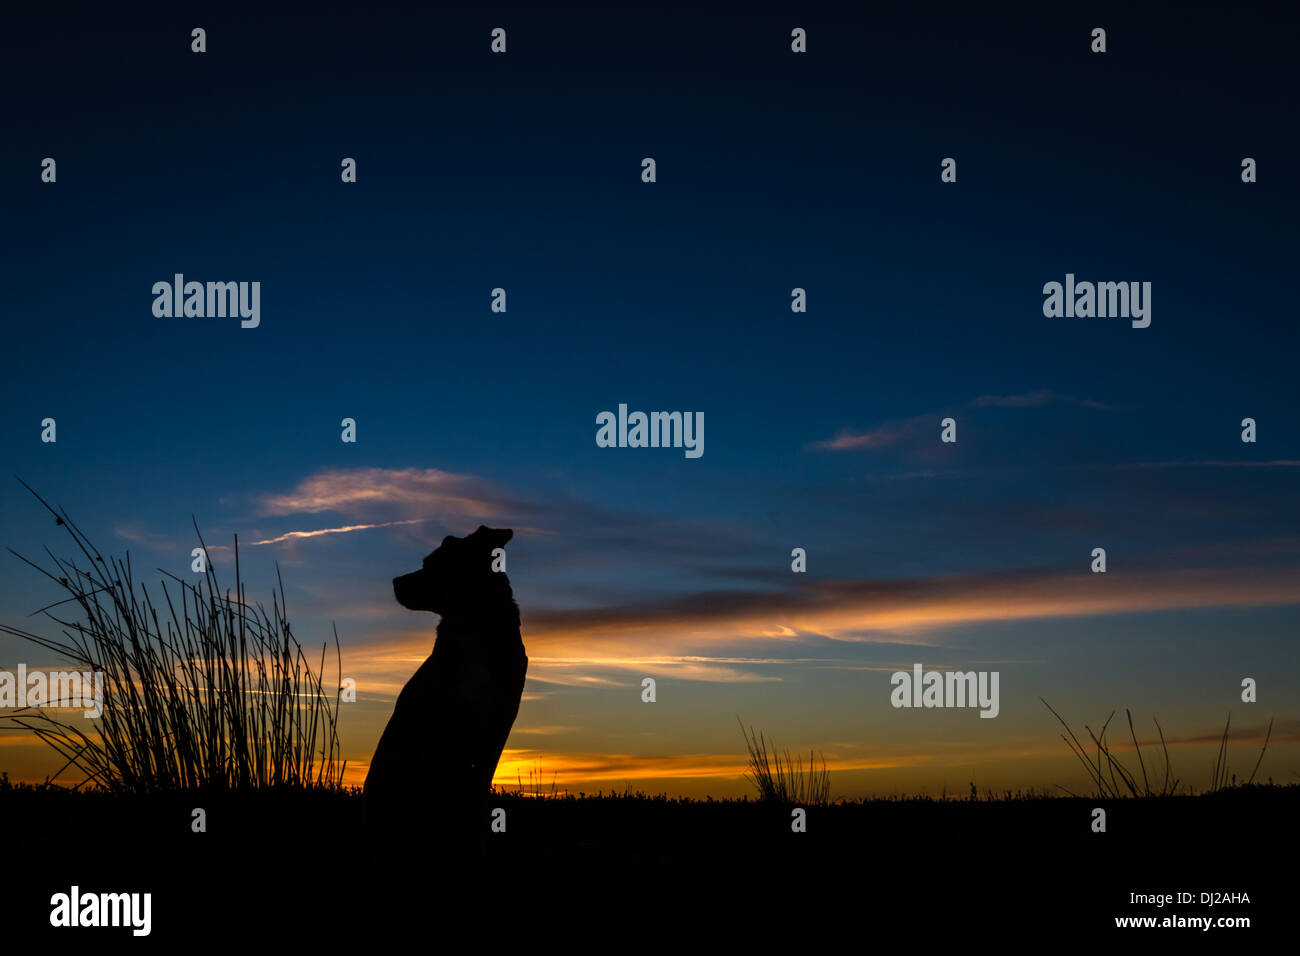 Dreaming dog at sunset - Stock Image